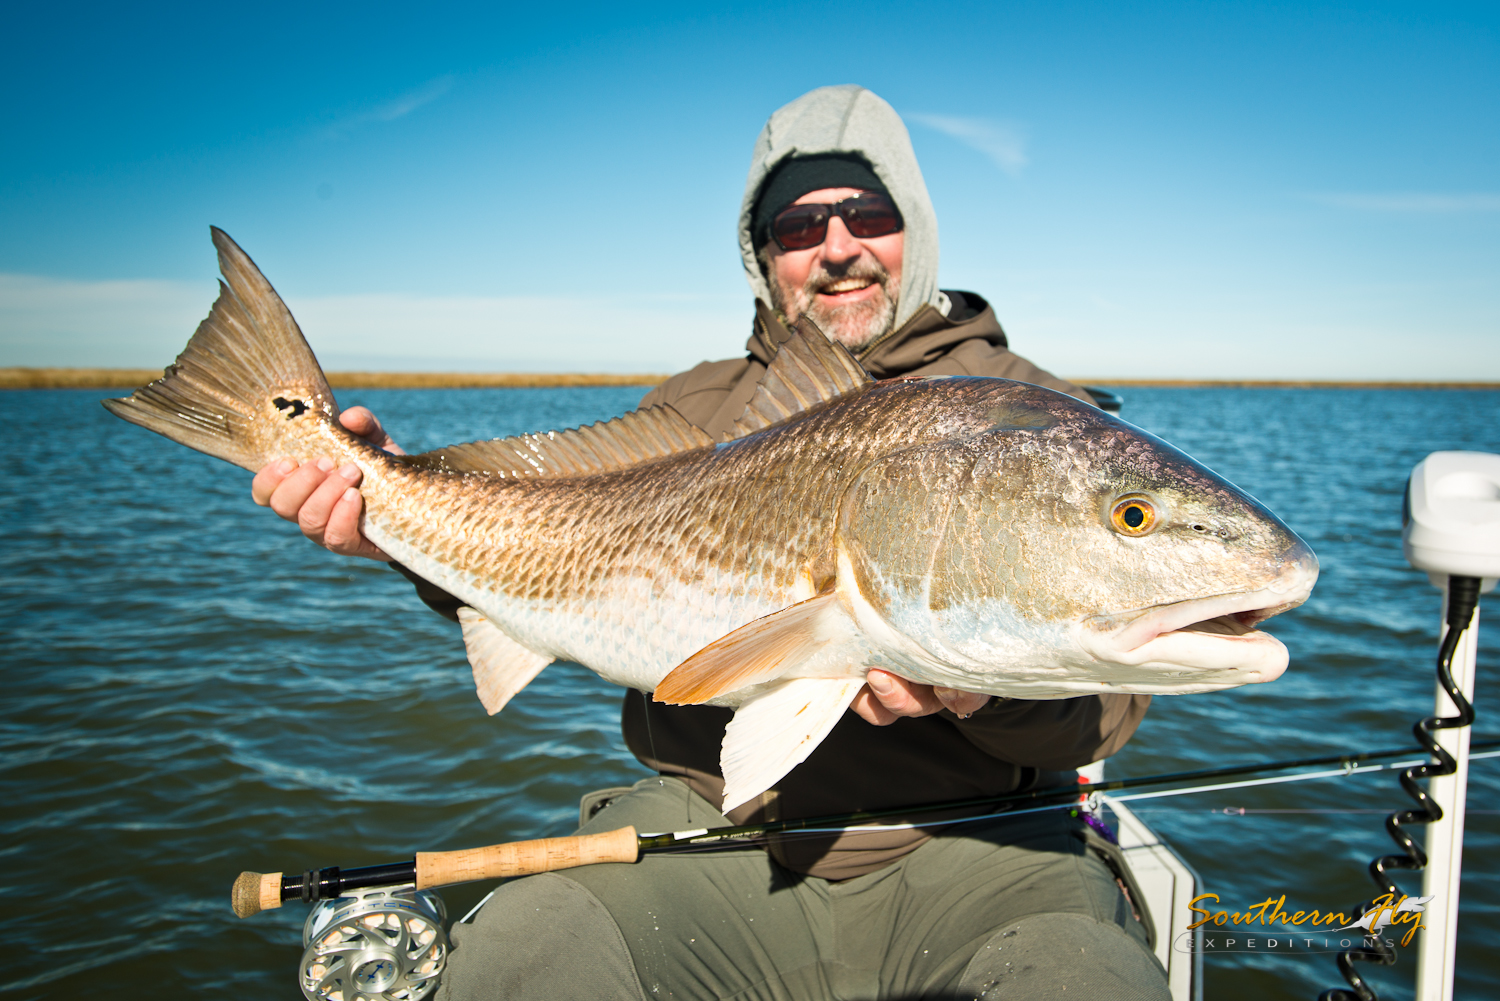 sight fishing with southern fly expeditions